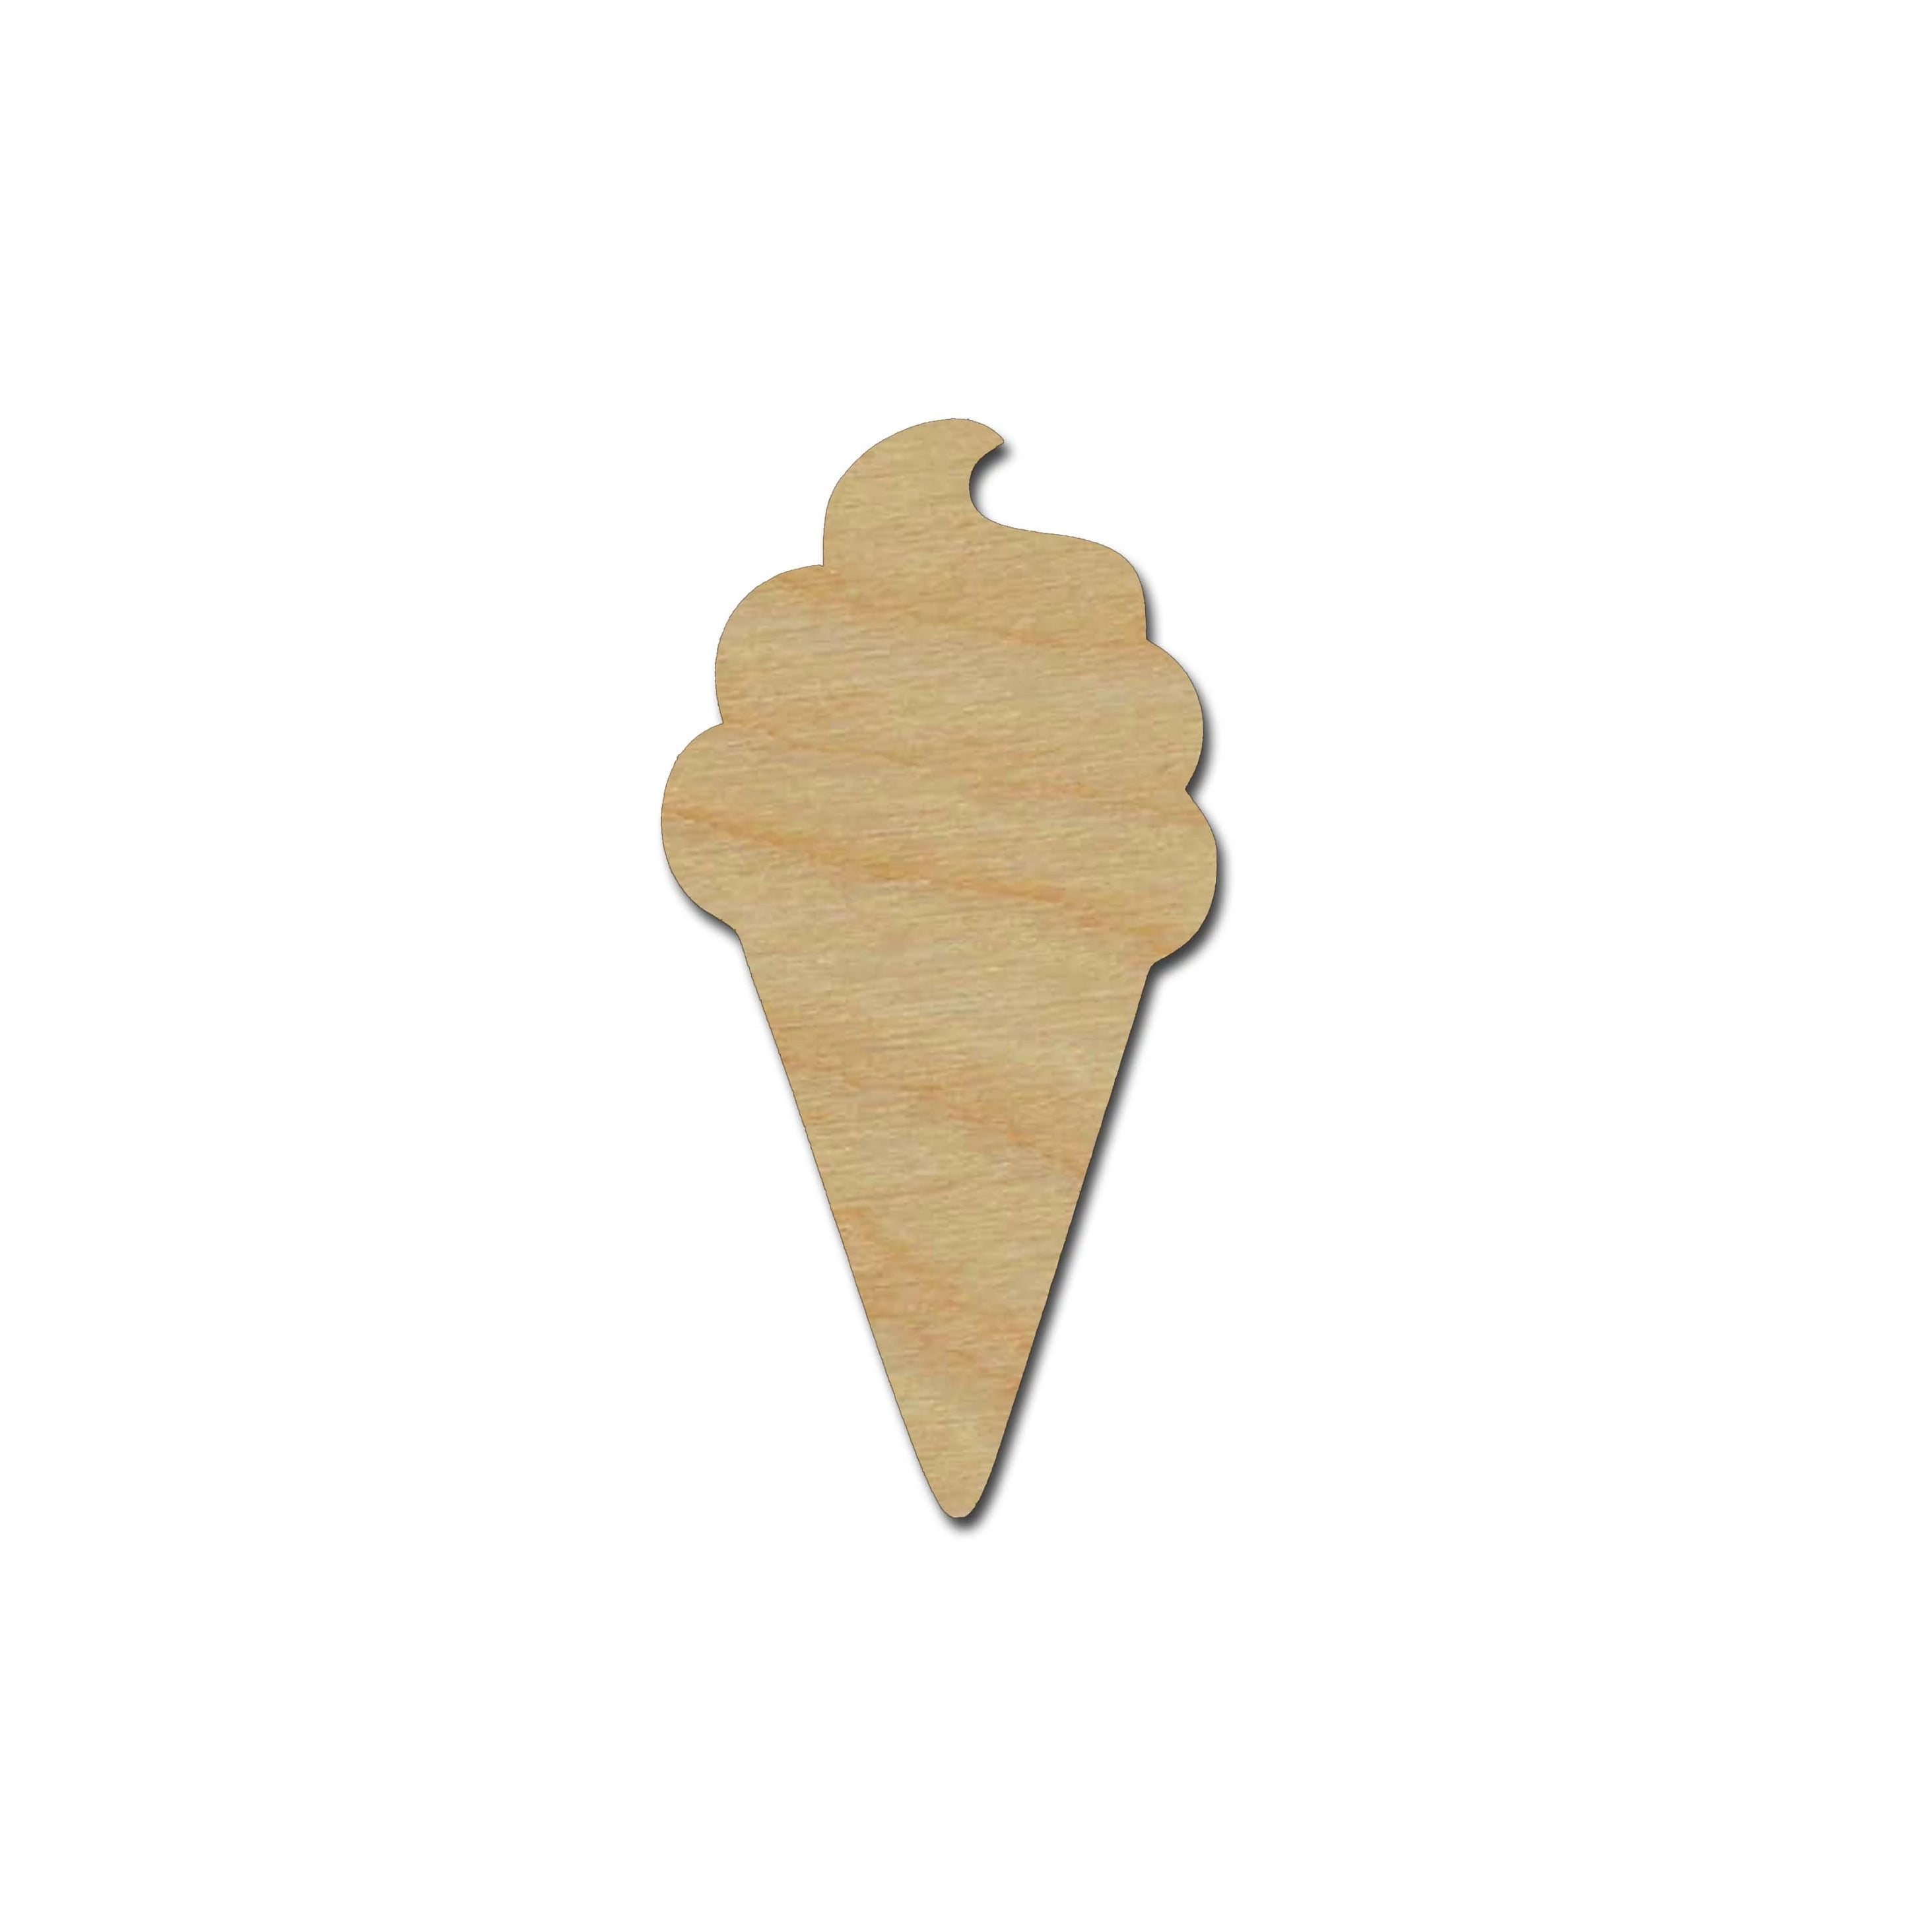 Ice Cream Cone Shape Unfinished Wood Cutouts DIY Crafts